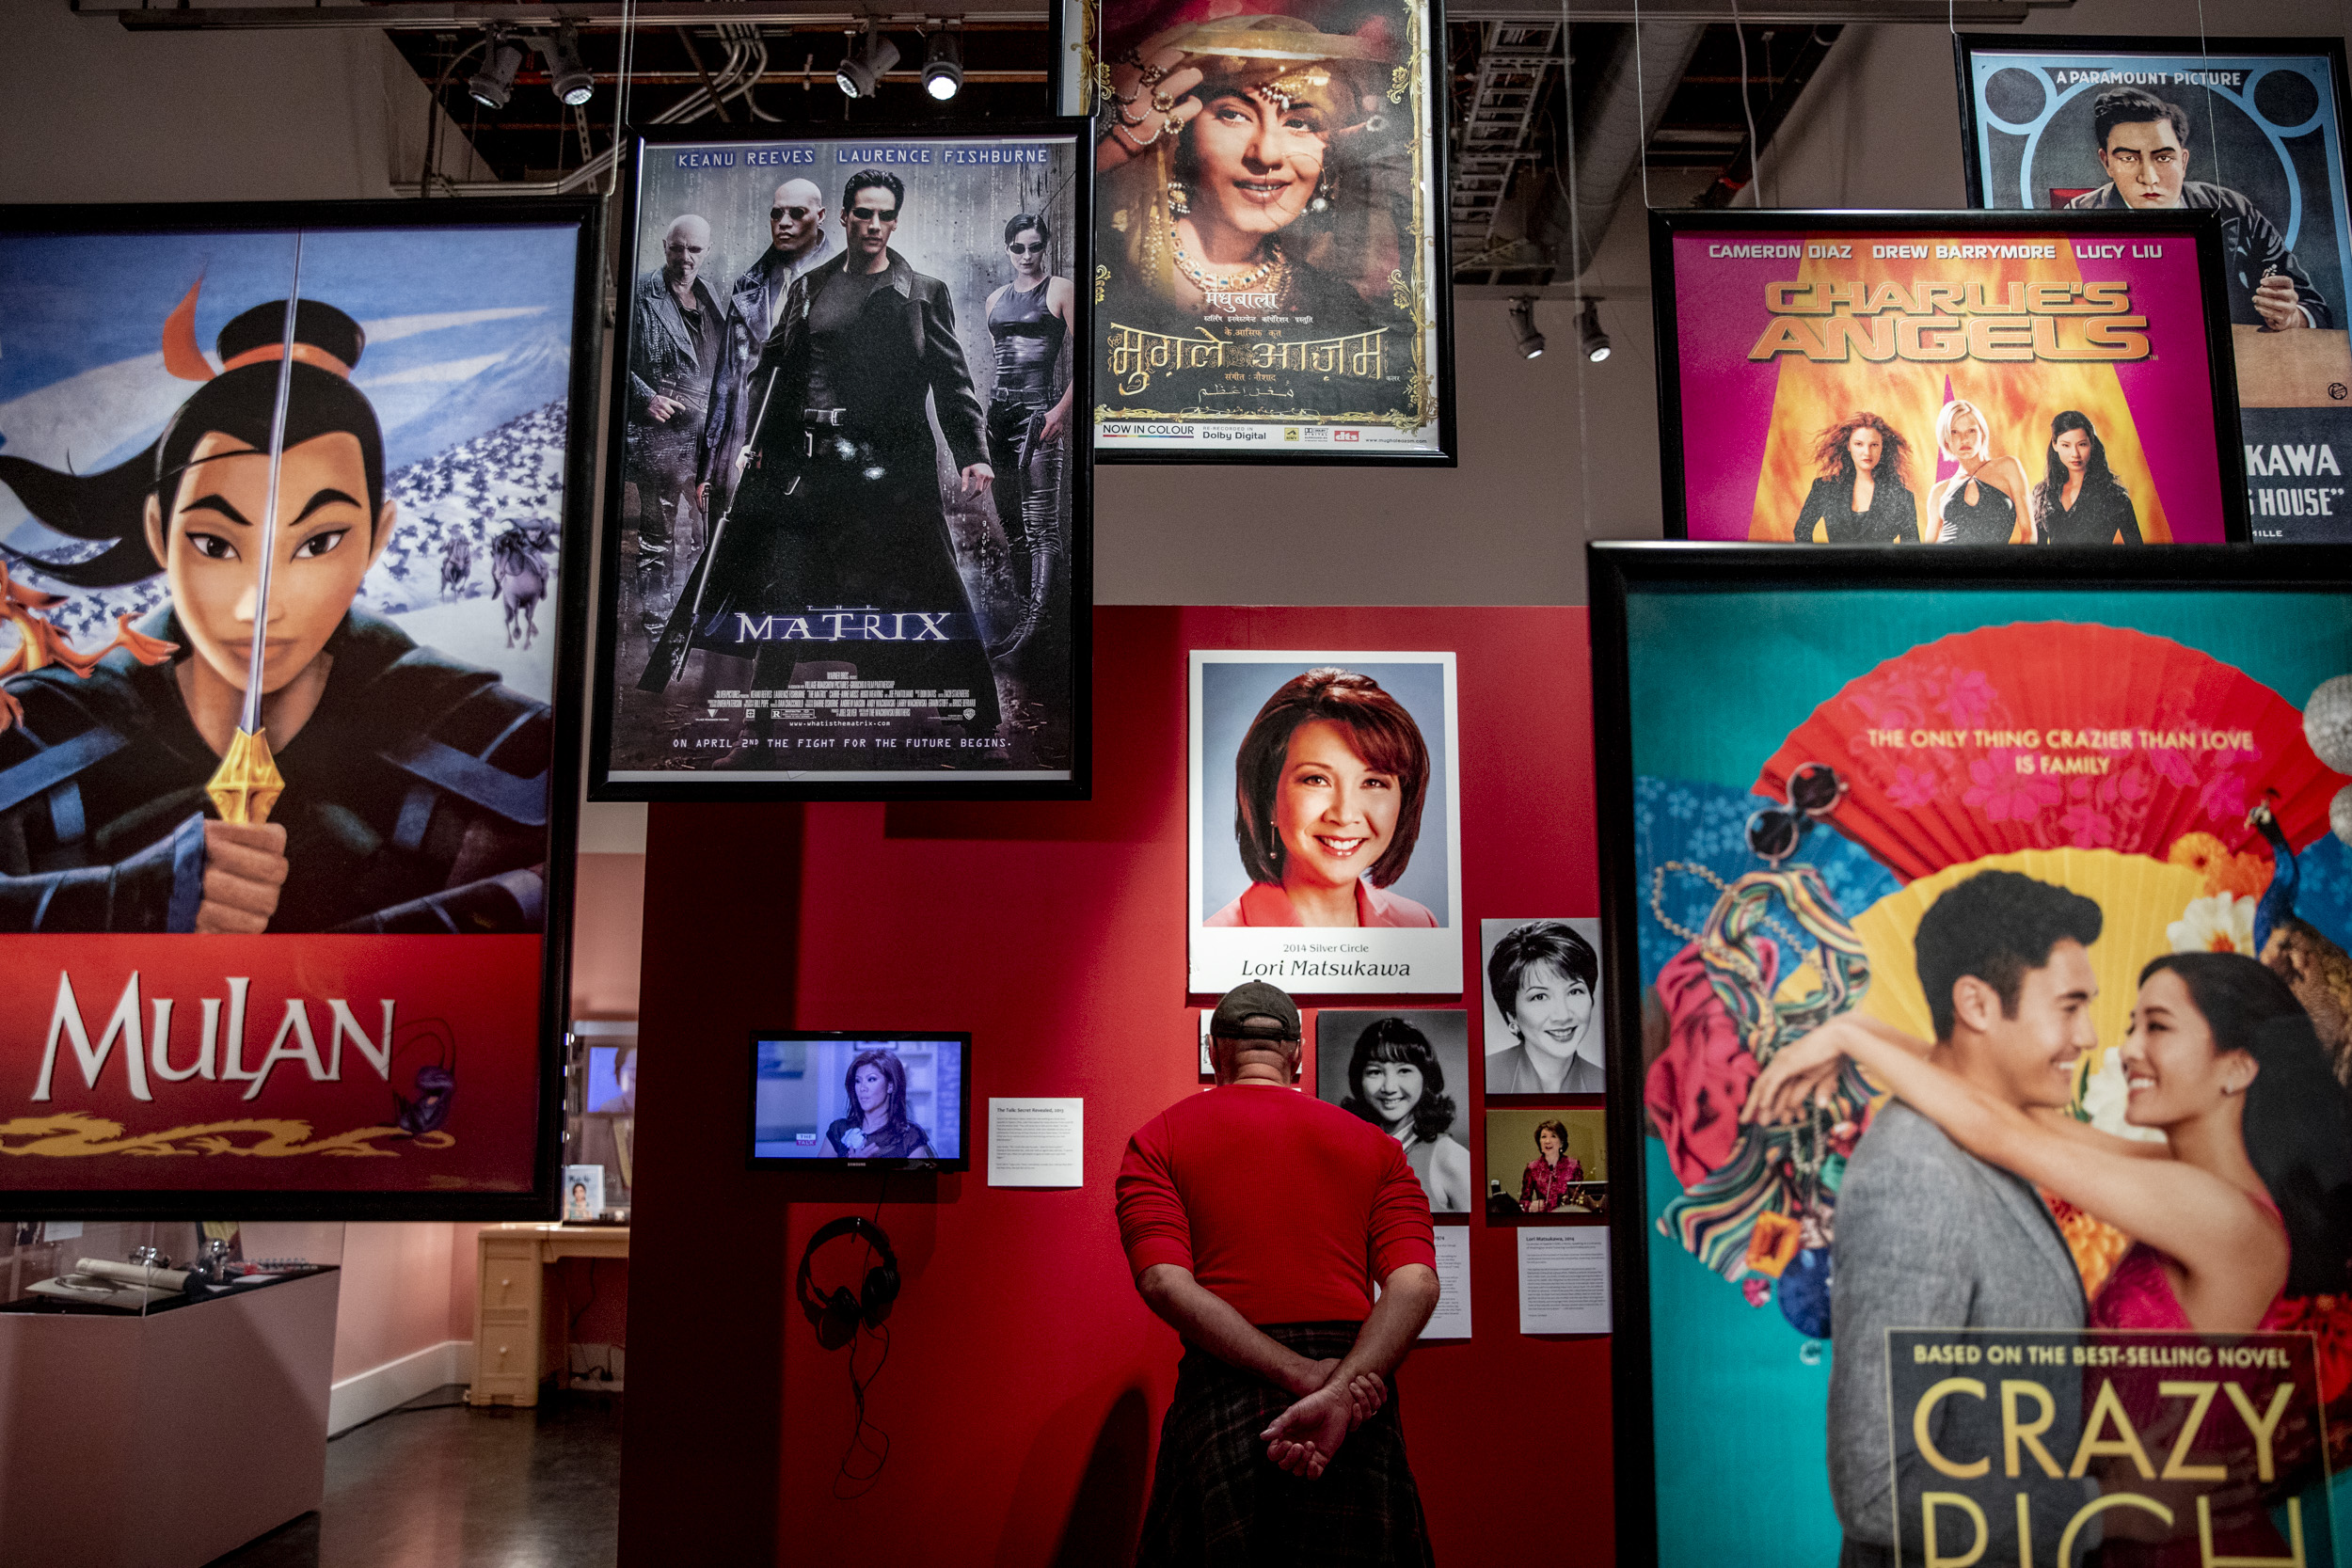 Movie posters hang from the ceiling